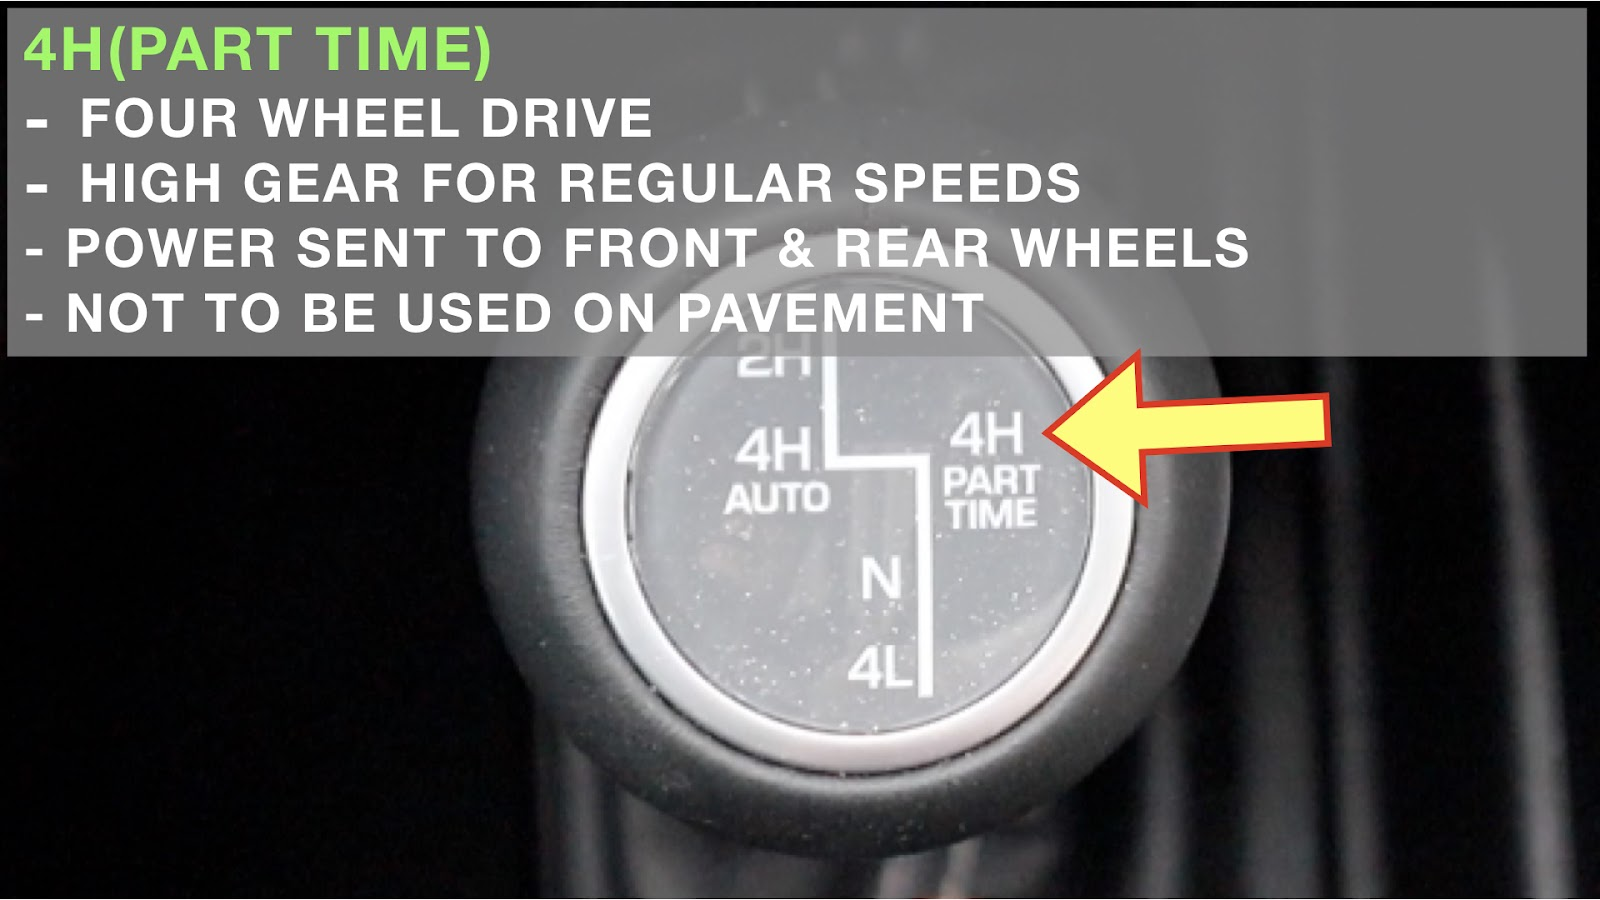 Image showing the 4H(Part Time) setting when using 4wd in a Jeep Wrangler